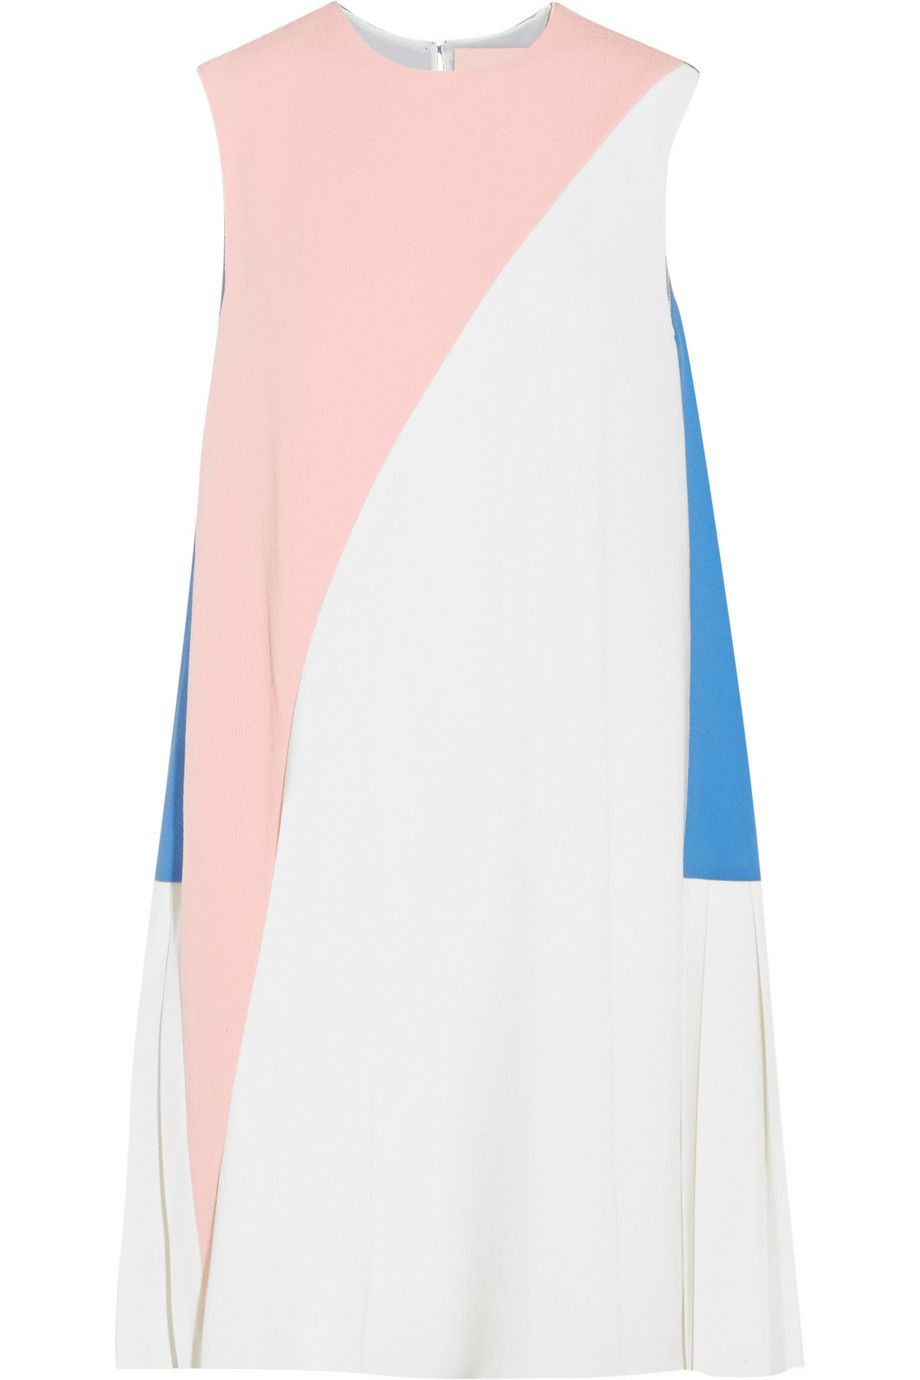 Seamed crepe dress in color block leggings